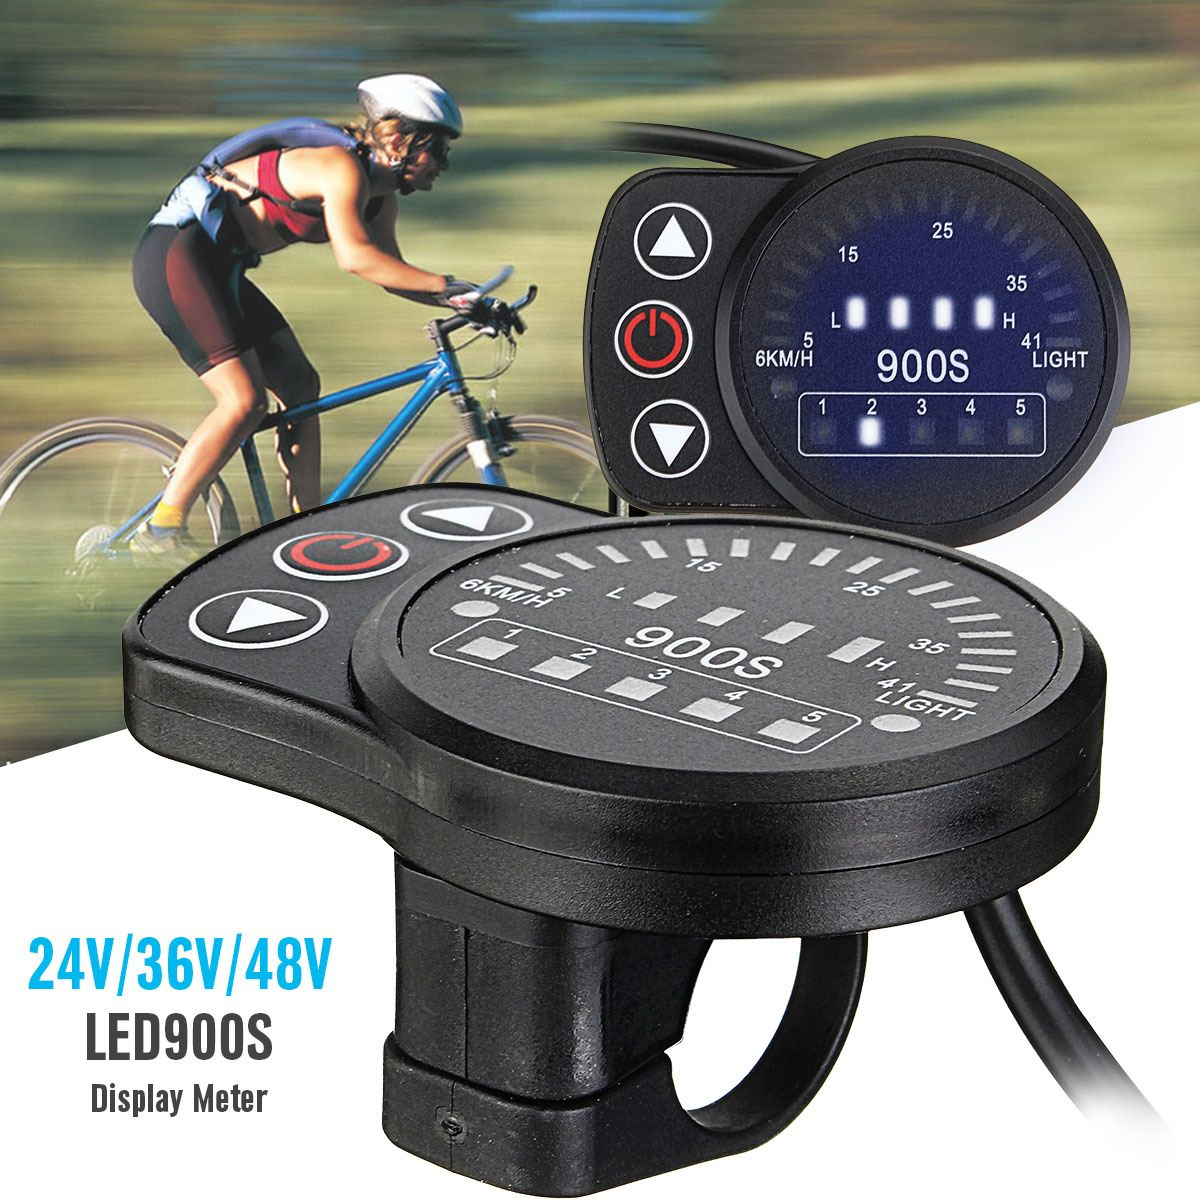 Precise Ebike Led Display Electric Bicycle Control Panel Electric Scooter Display Meter Intelligent 24v/36v/48v Kt-led900s Bike Accessories